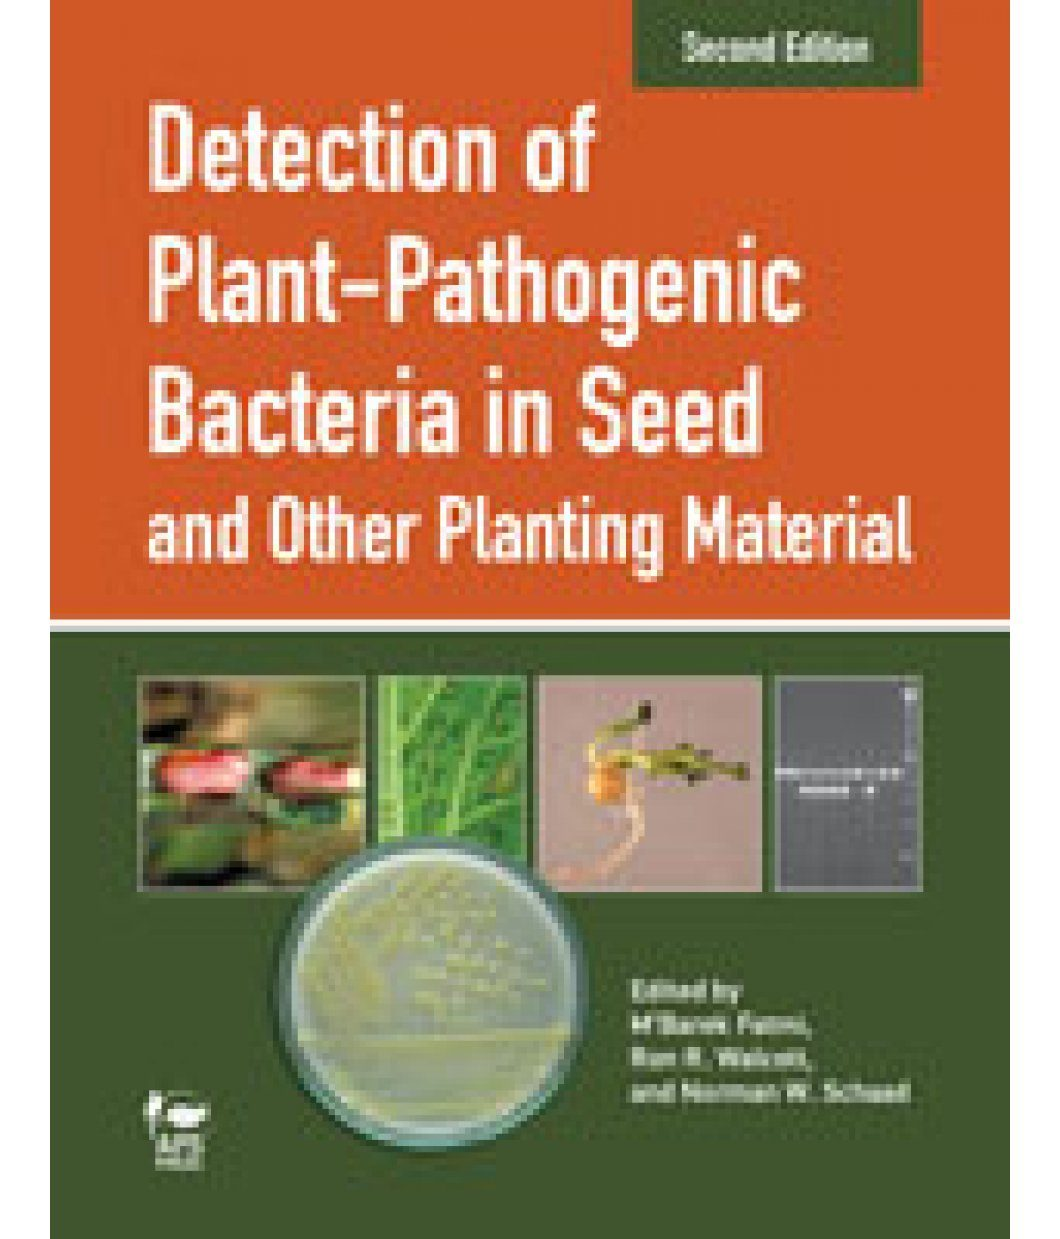 Detection of Plant-Pathogenic Bacteria in Seed and Other Planting Material